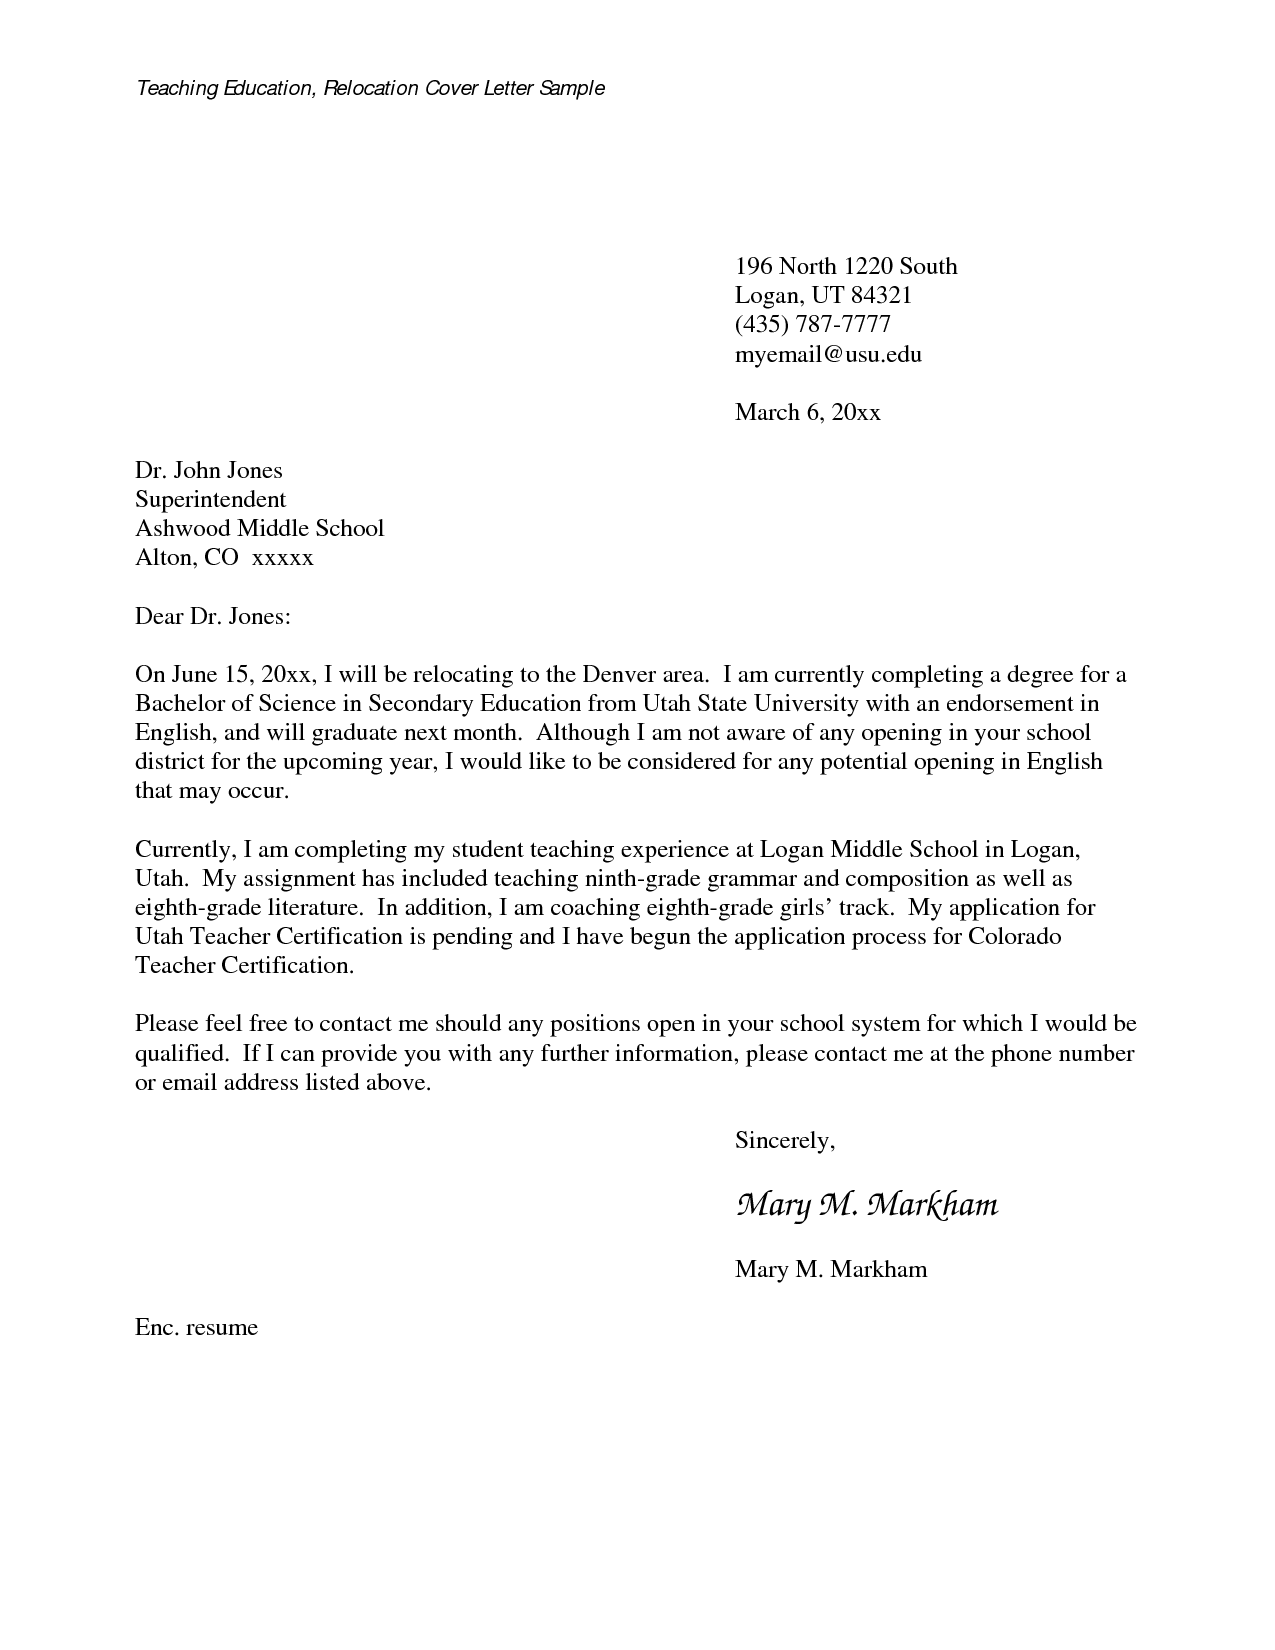 Letters For Teachers Relocating MedwebcomRelocation Cover Letter Examples